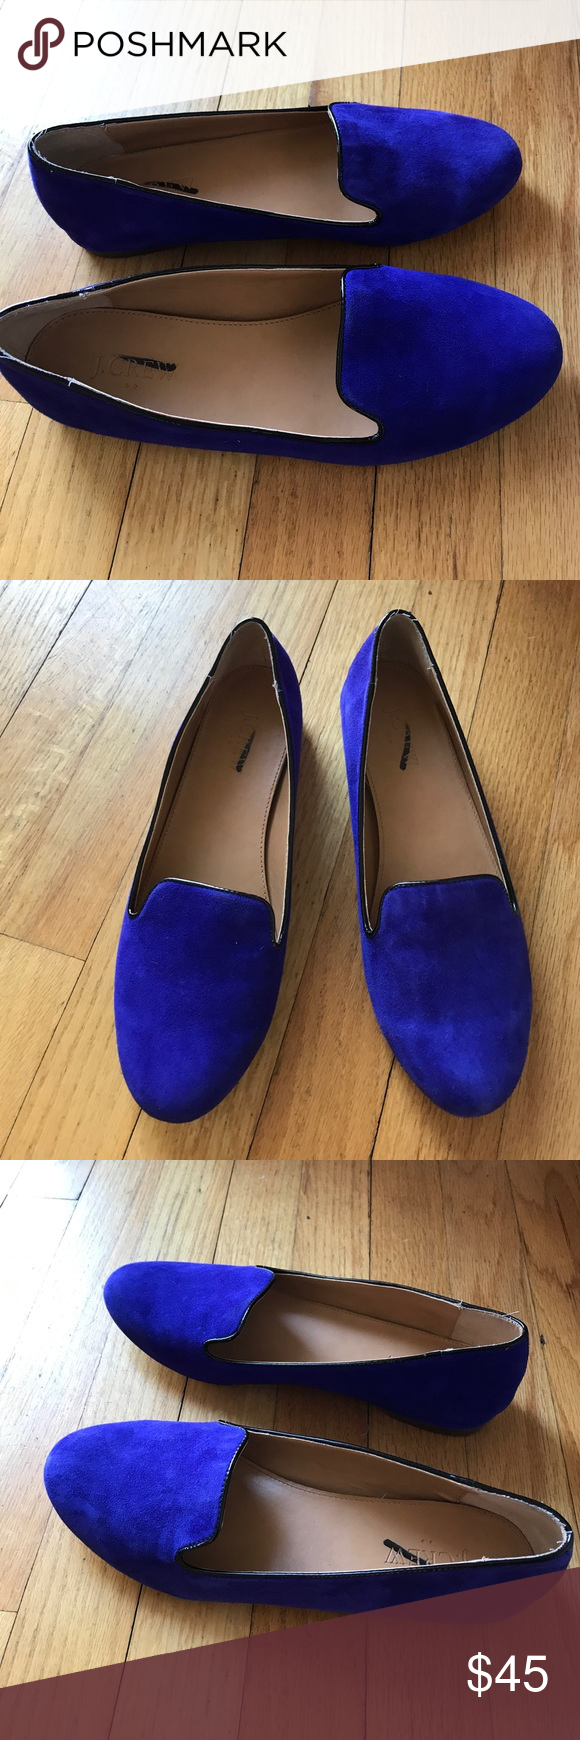 J Crew Cora royal blue/purple suede loafers 8 Gently worn a couple of times. Very little sign of wear. Label is marked to prevent store returns. J. Crew Shoes